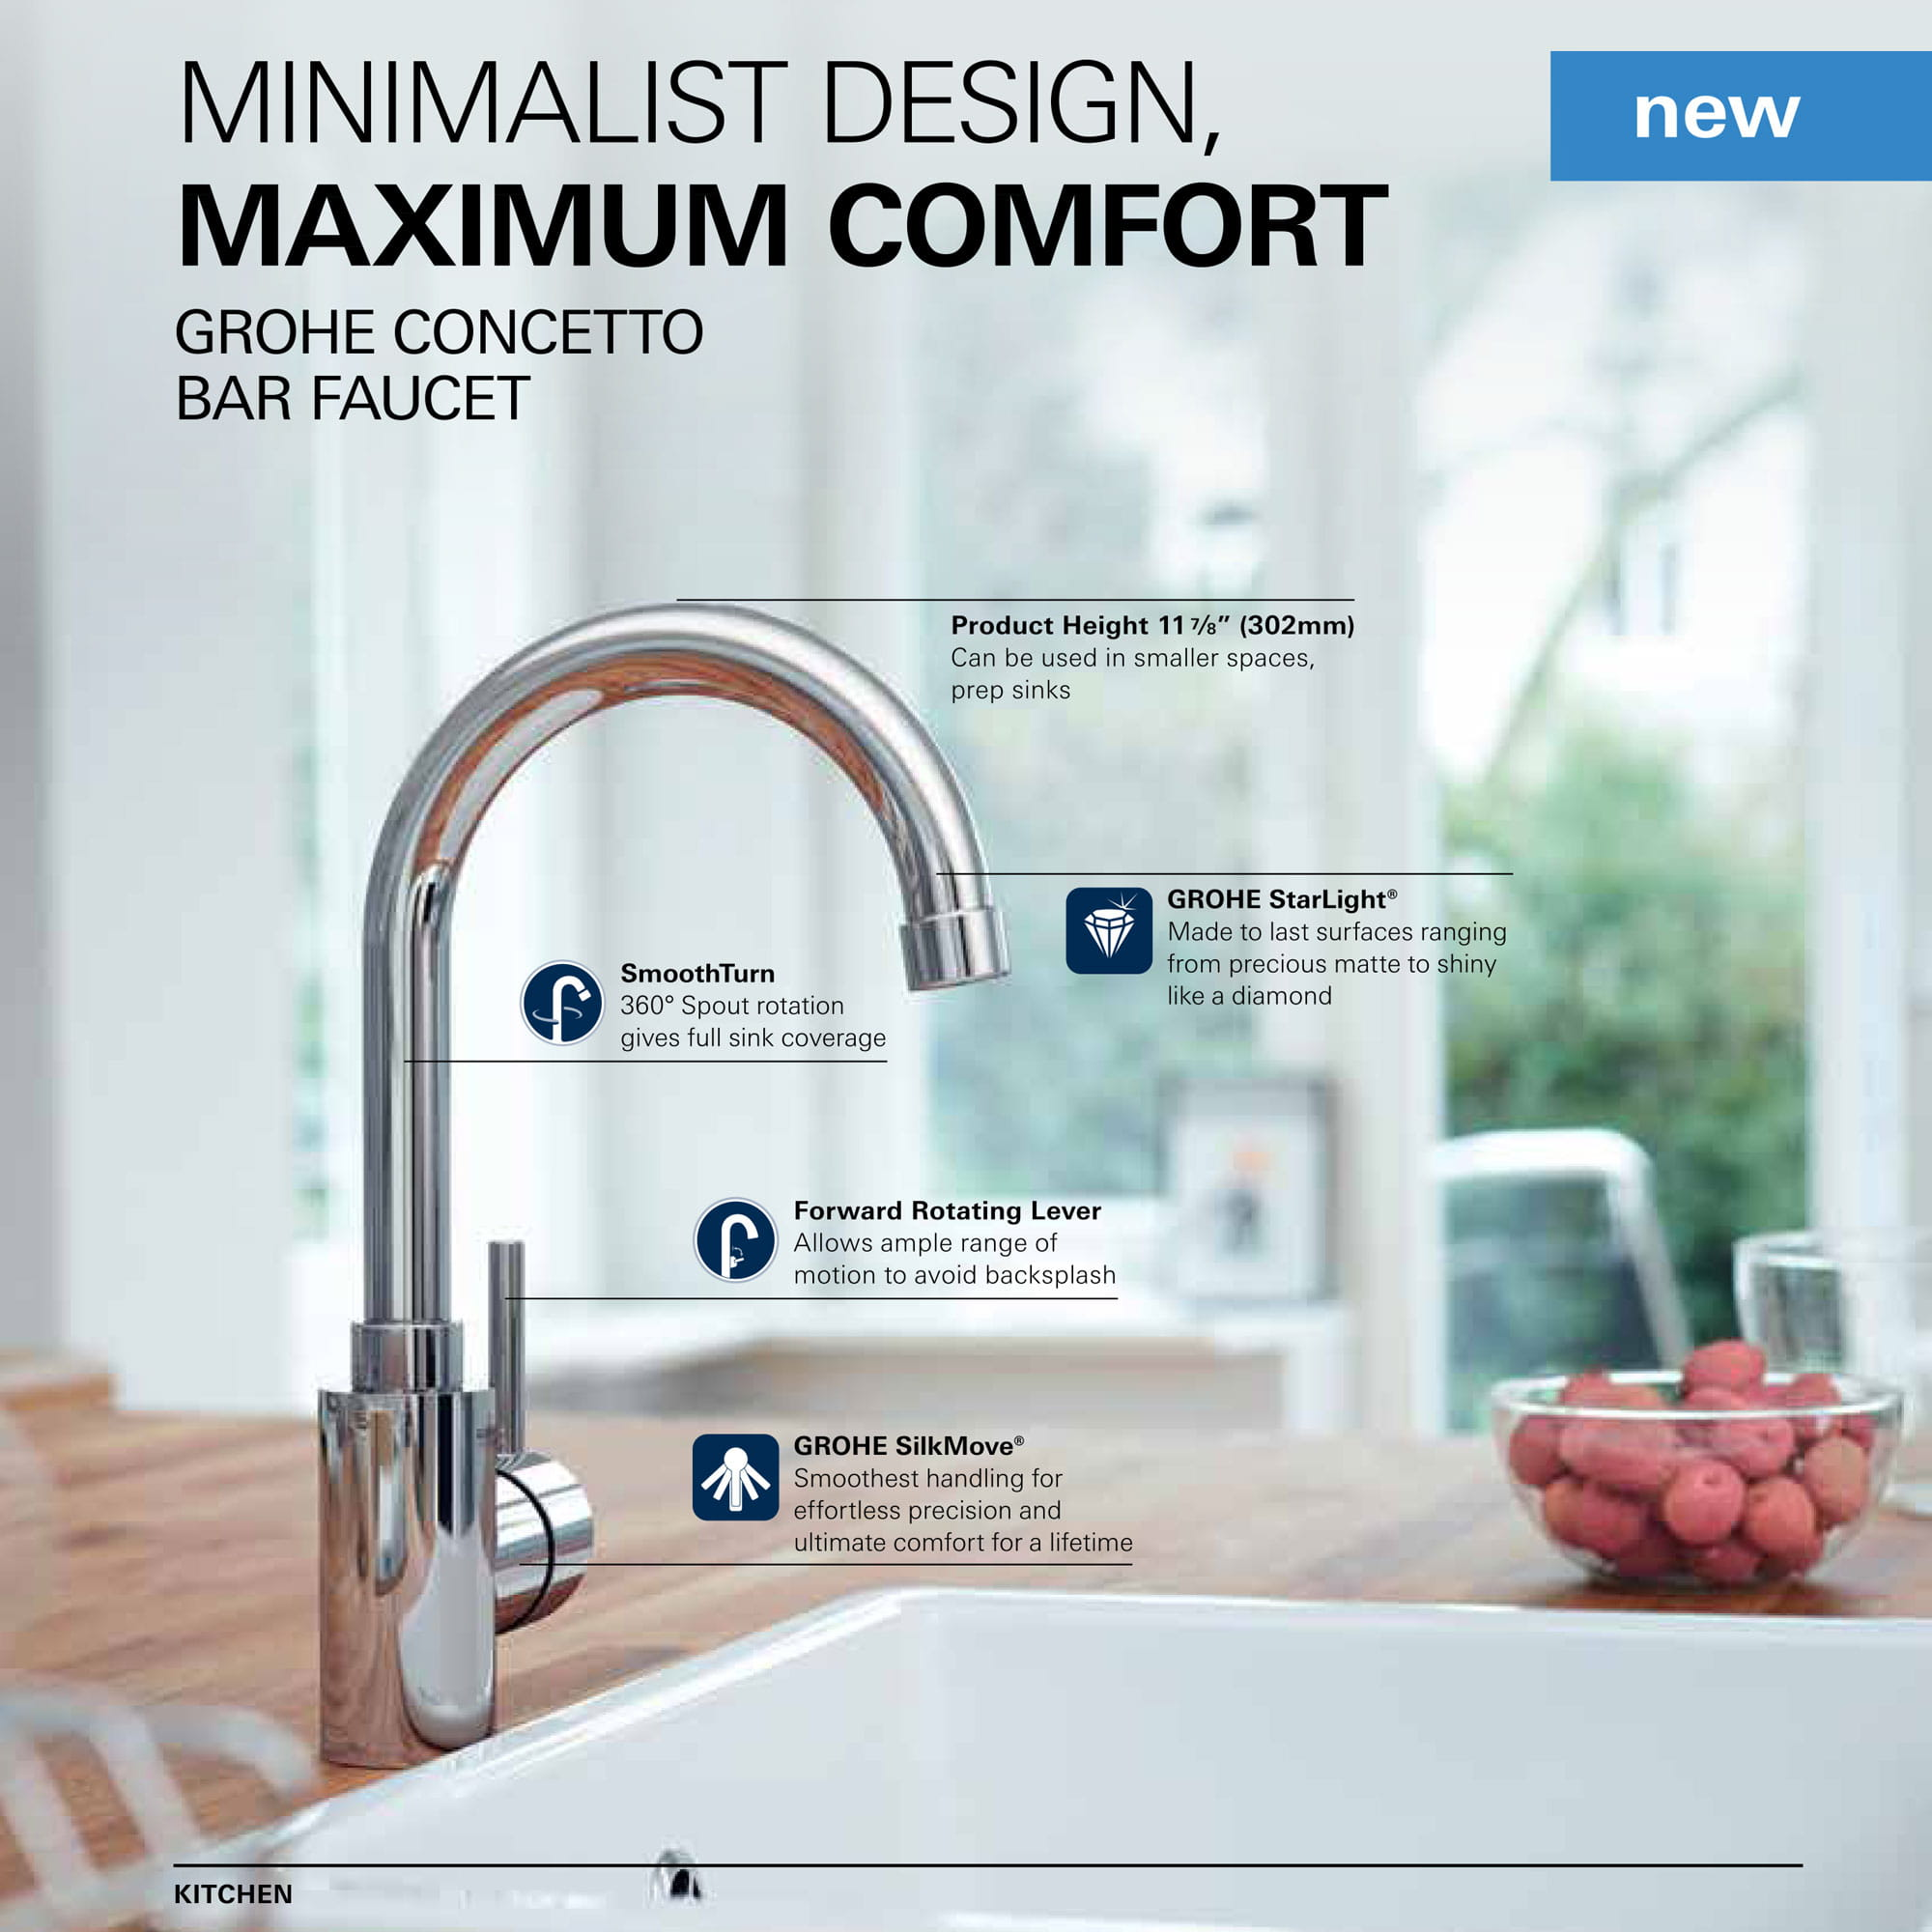 sink with faucet with text that includes specs, and cup of fruit on the side of table